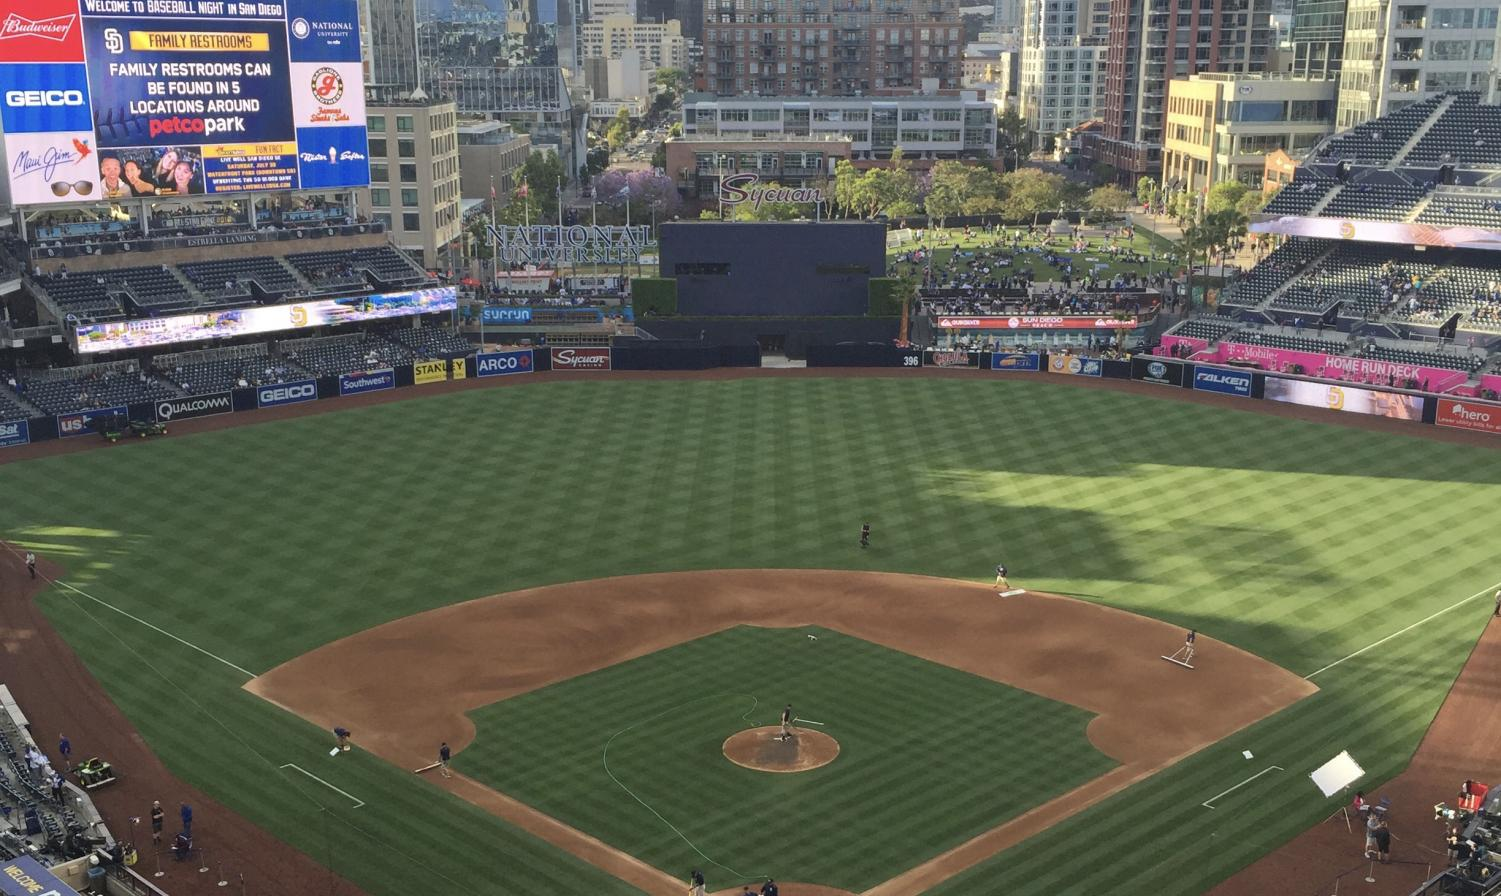 Petco Park on Padres opening day.